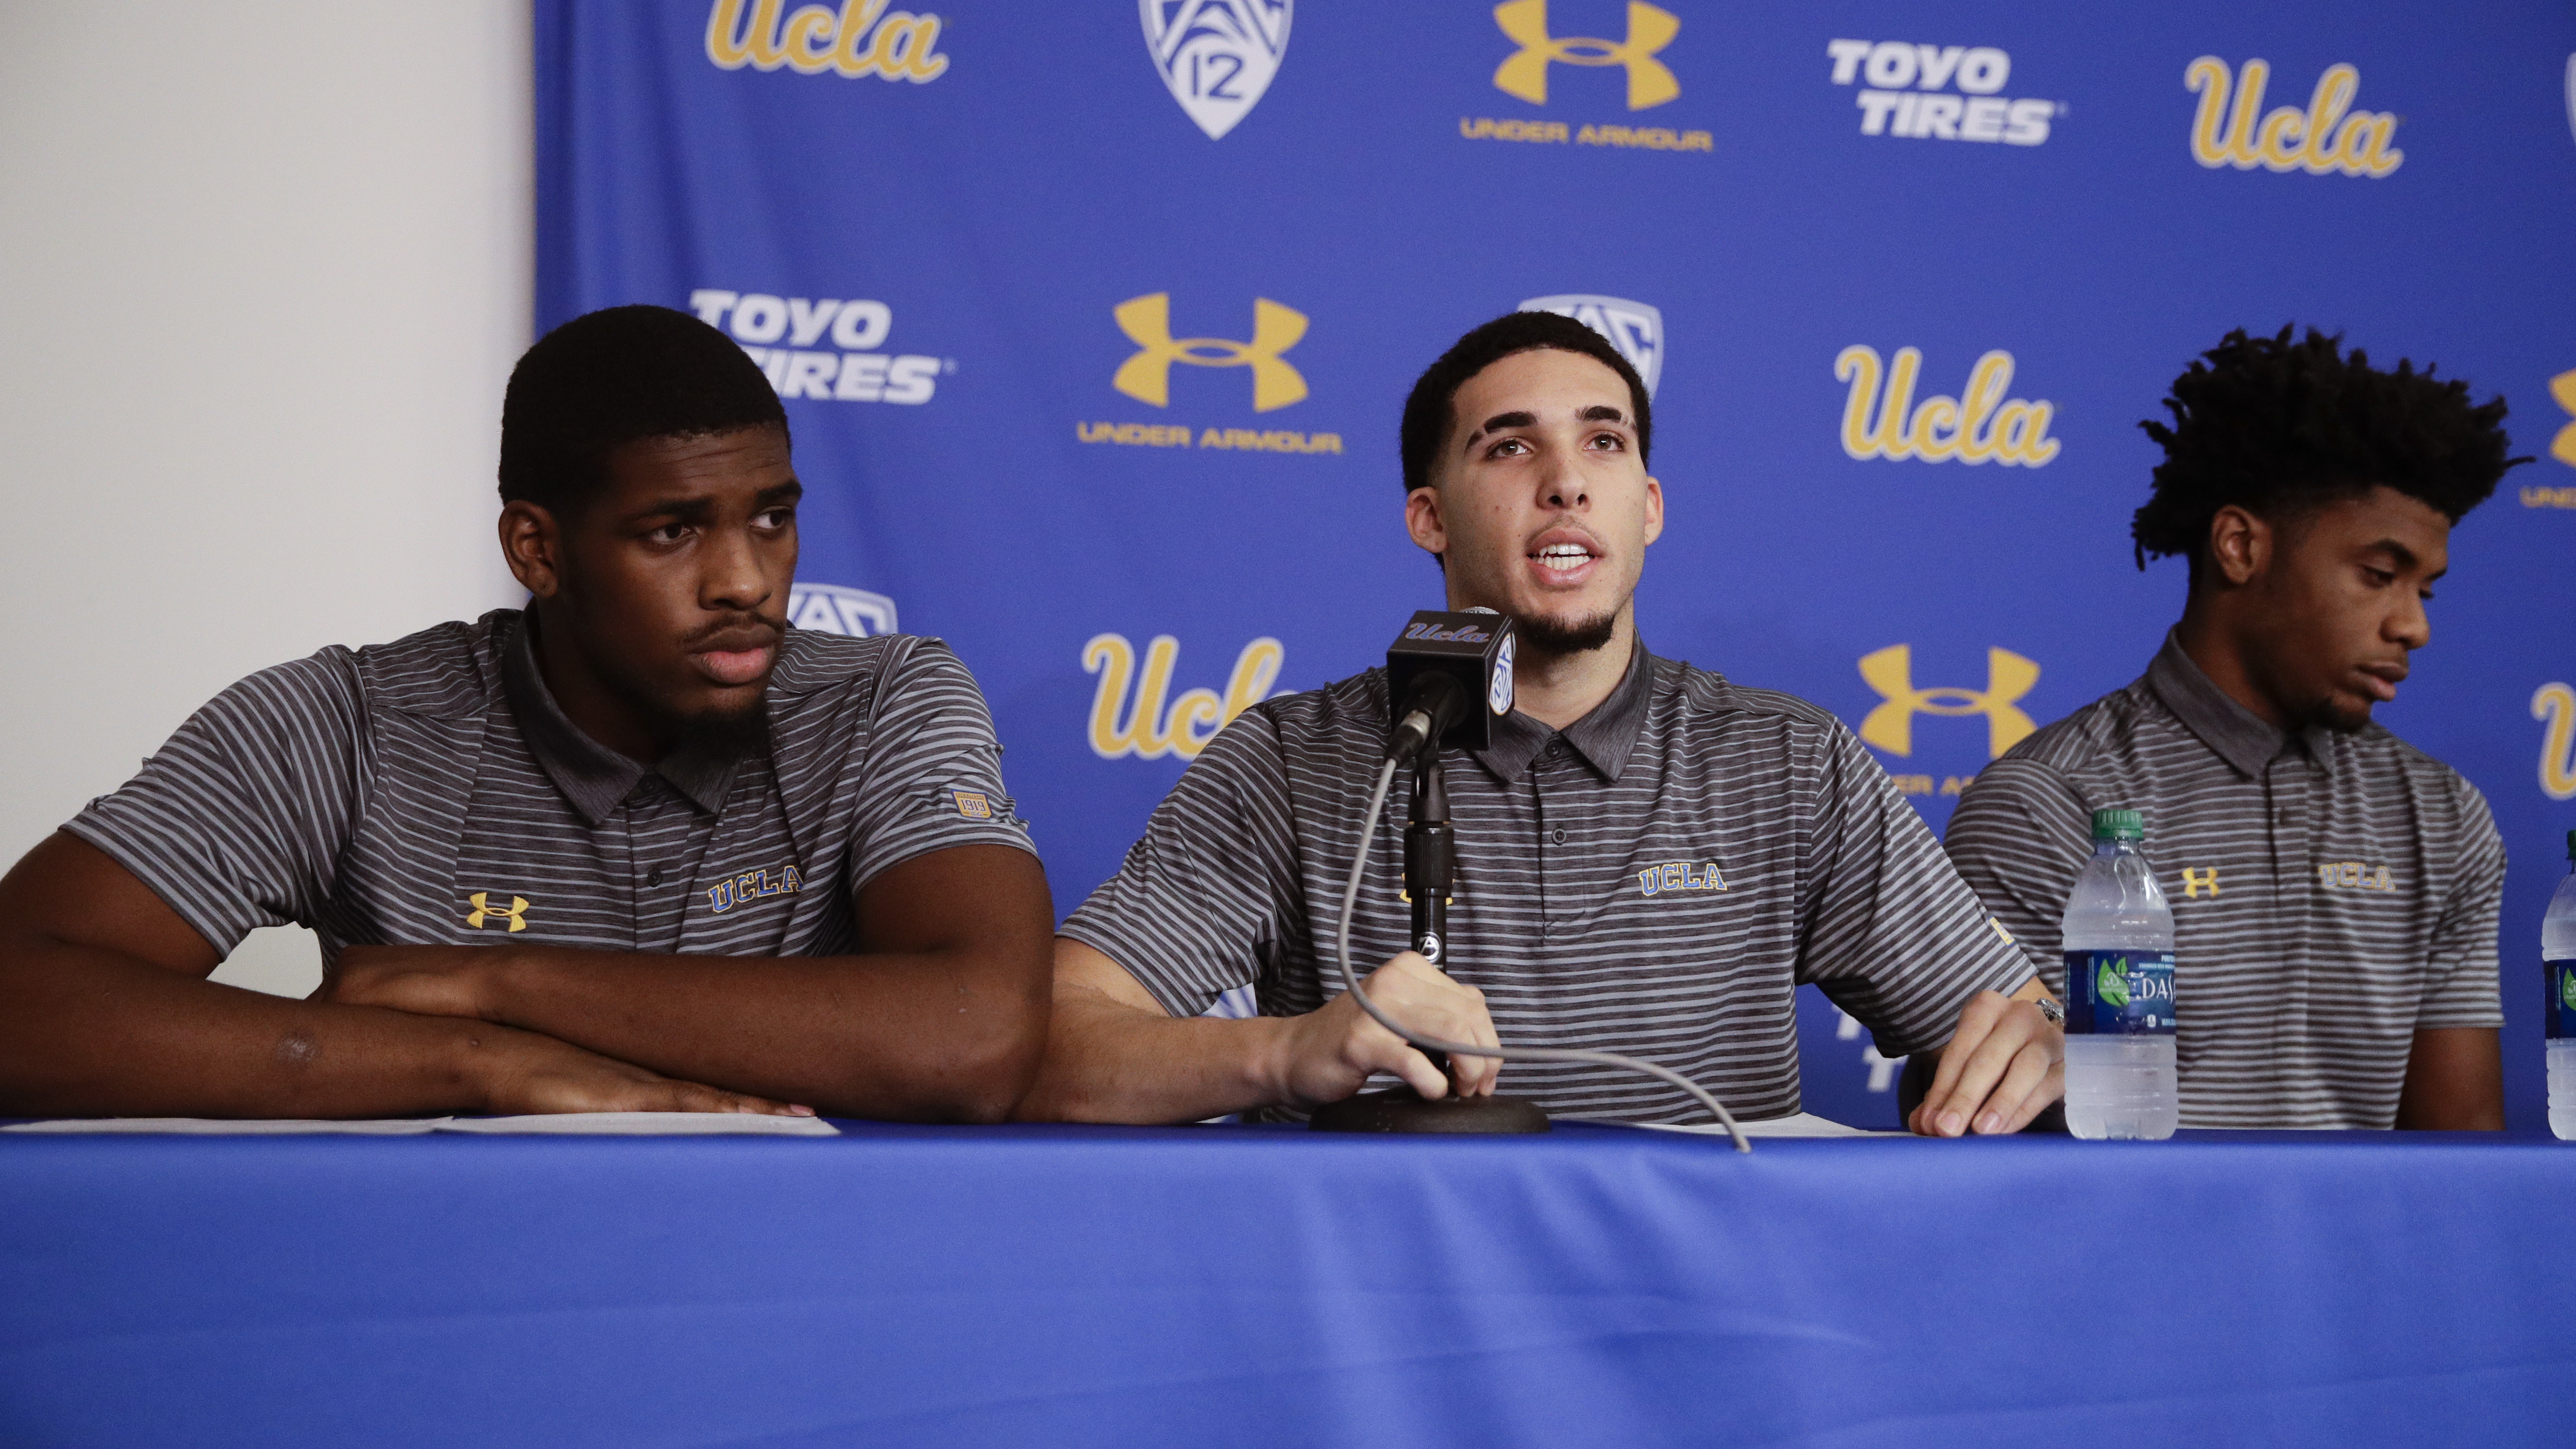 UCLA basketball players to speak at news conference on campus this morning